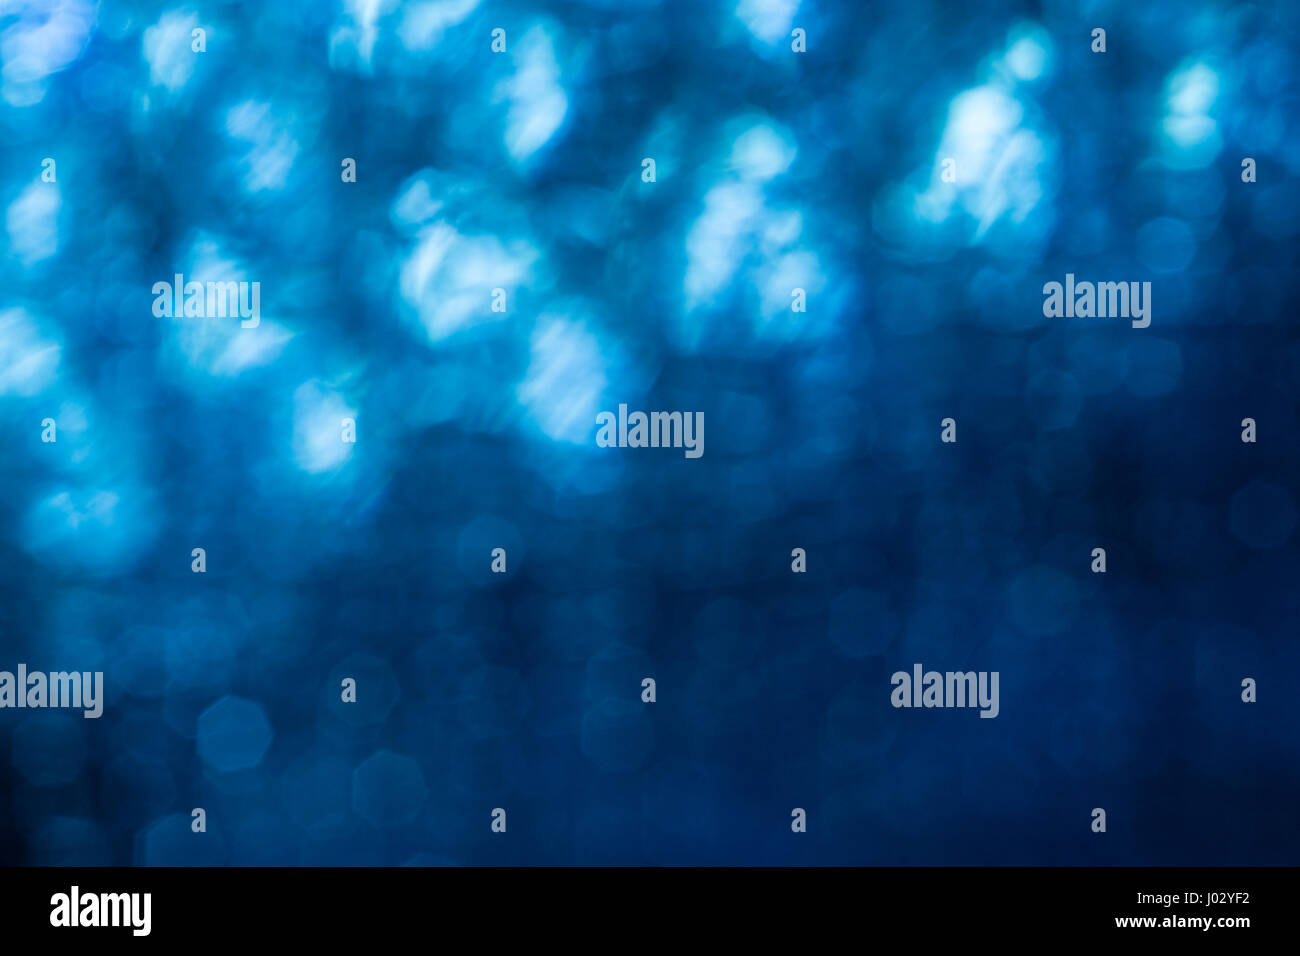 Abstract Blue Background For Website Wallpaper Alien